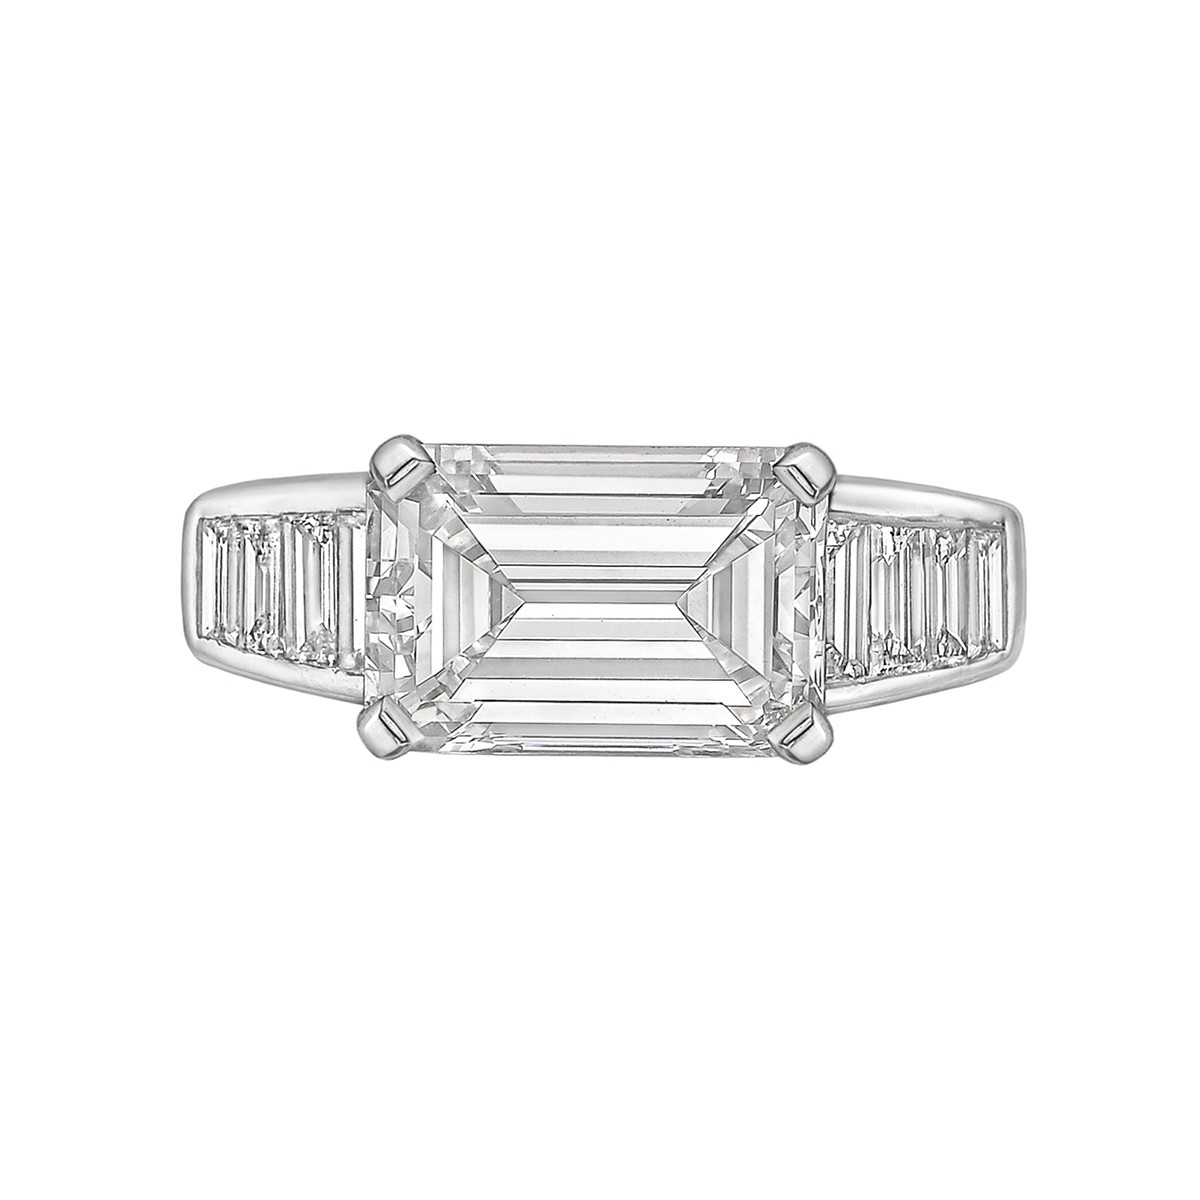 3.00ct Emerald-Cut Diamond East-West Ring